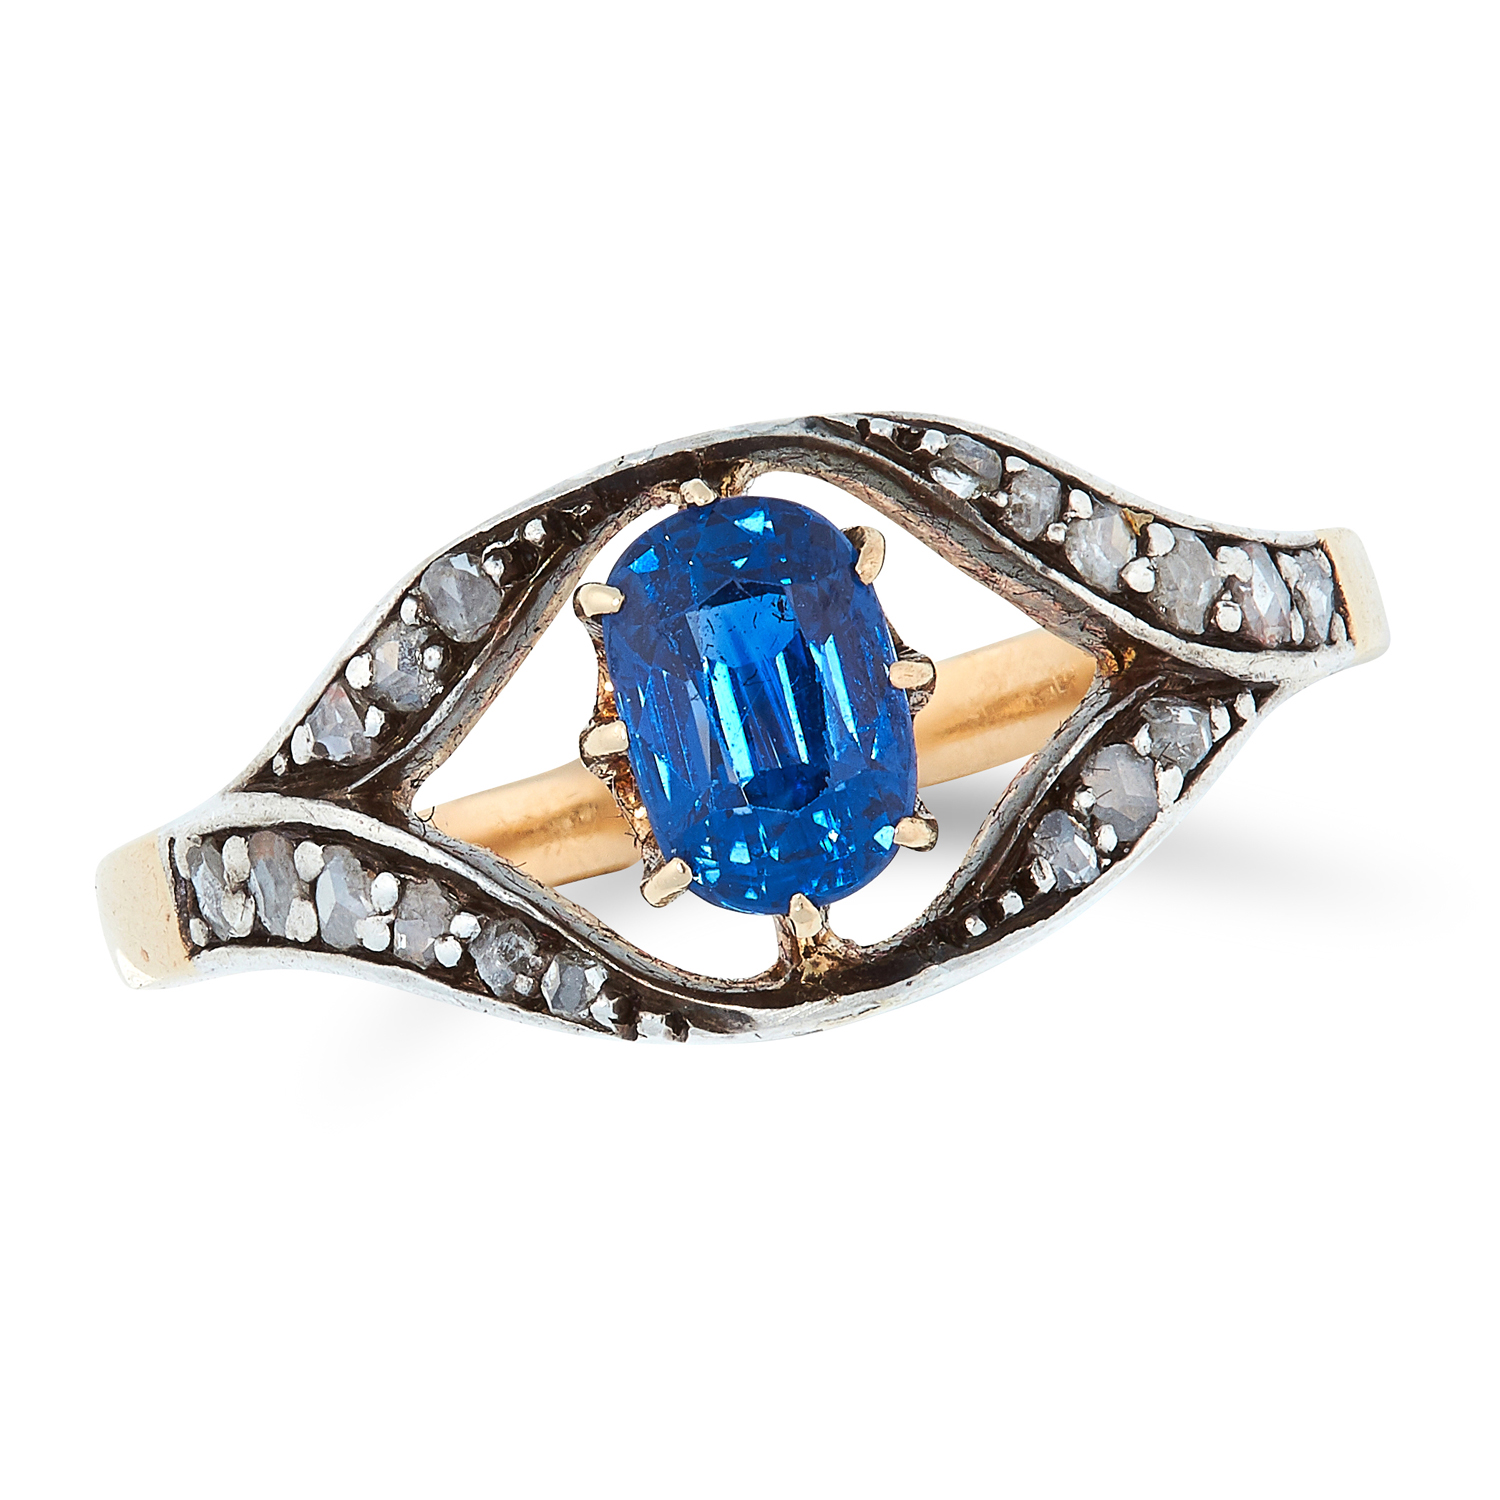 AN ANTIQUE SAPPHIRE AND DIAMOND RING set with an oval cut sapphire in a border of rose cut diamonds,